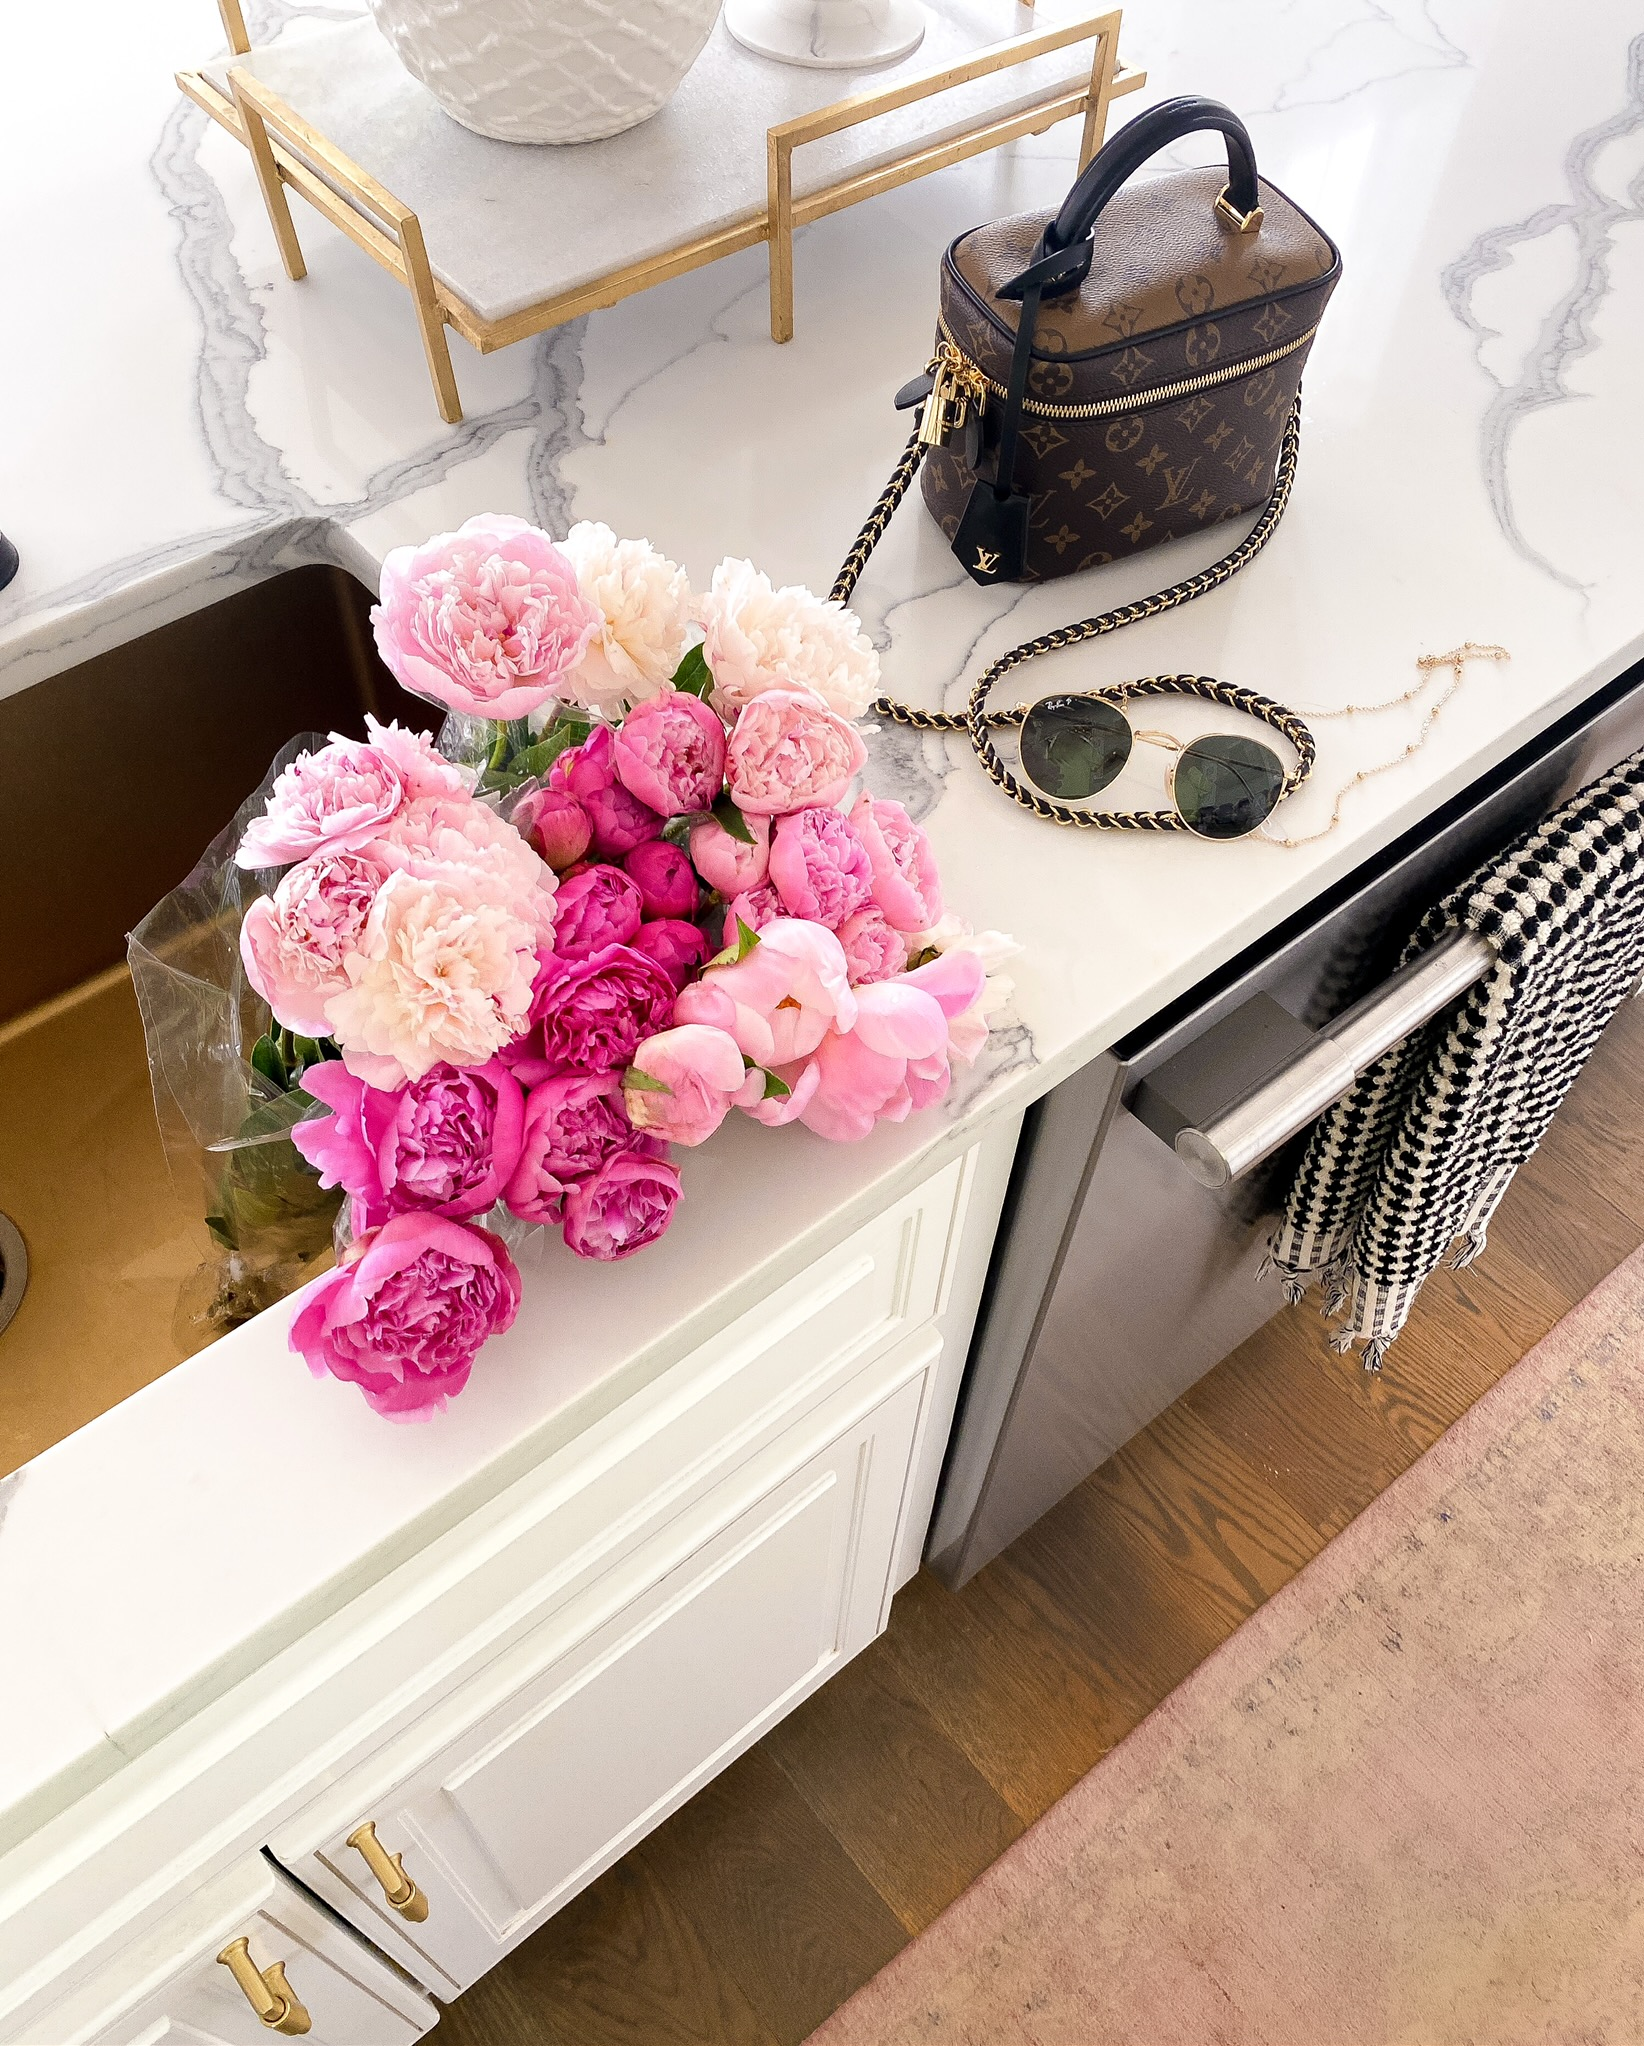 Instagram Recap by popular US lifestyle blog, The Sweetest Thing: image of a pair of Nordstrom Icons 53mm Retro Sunglasses RAY-BAN, Francesca's Nelly Heart Sunglass Chain, Wayfair Dunbar Accent Tray, Anthropologie Wanderer Towel Collection Set, and RugsUSA Pink Allurance Medallion Fringe Area Rug.